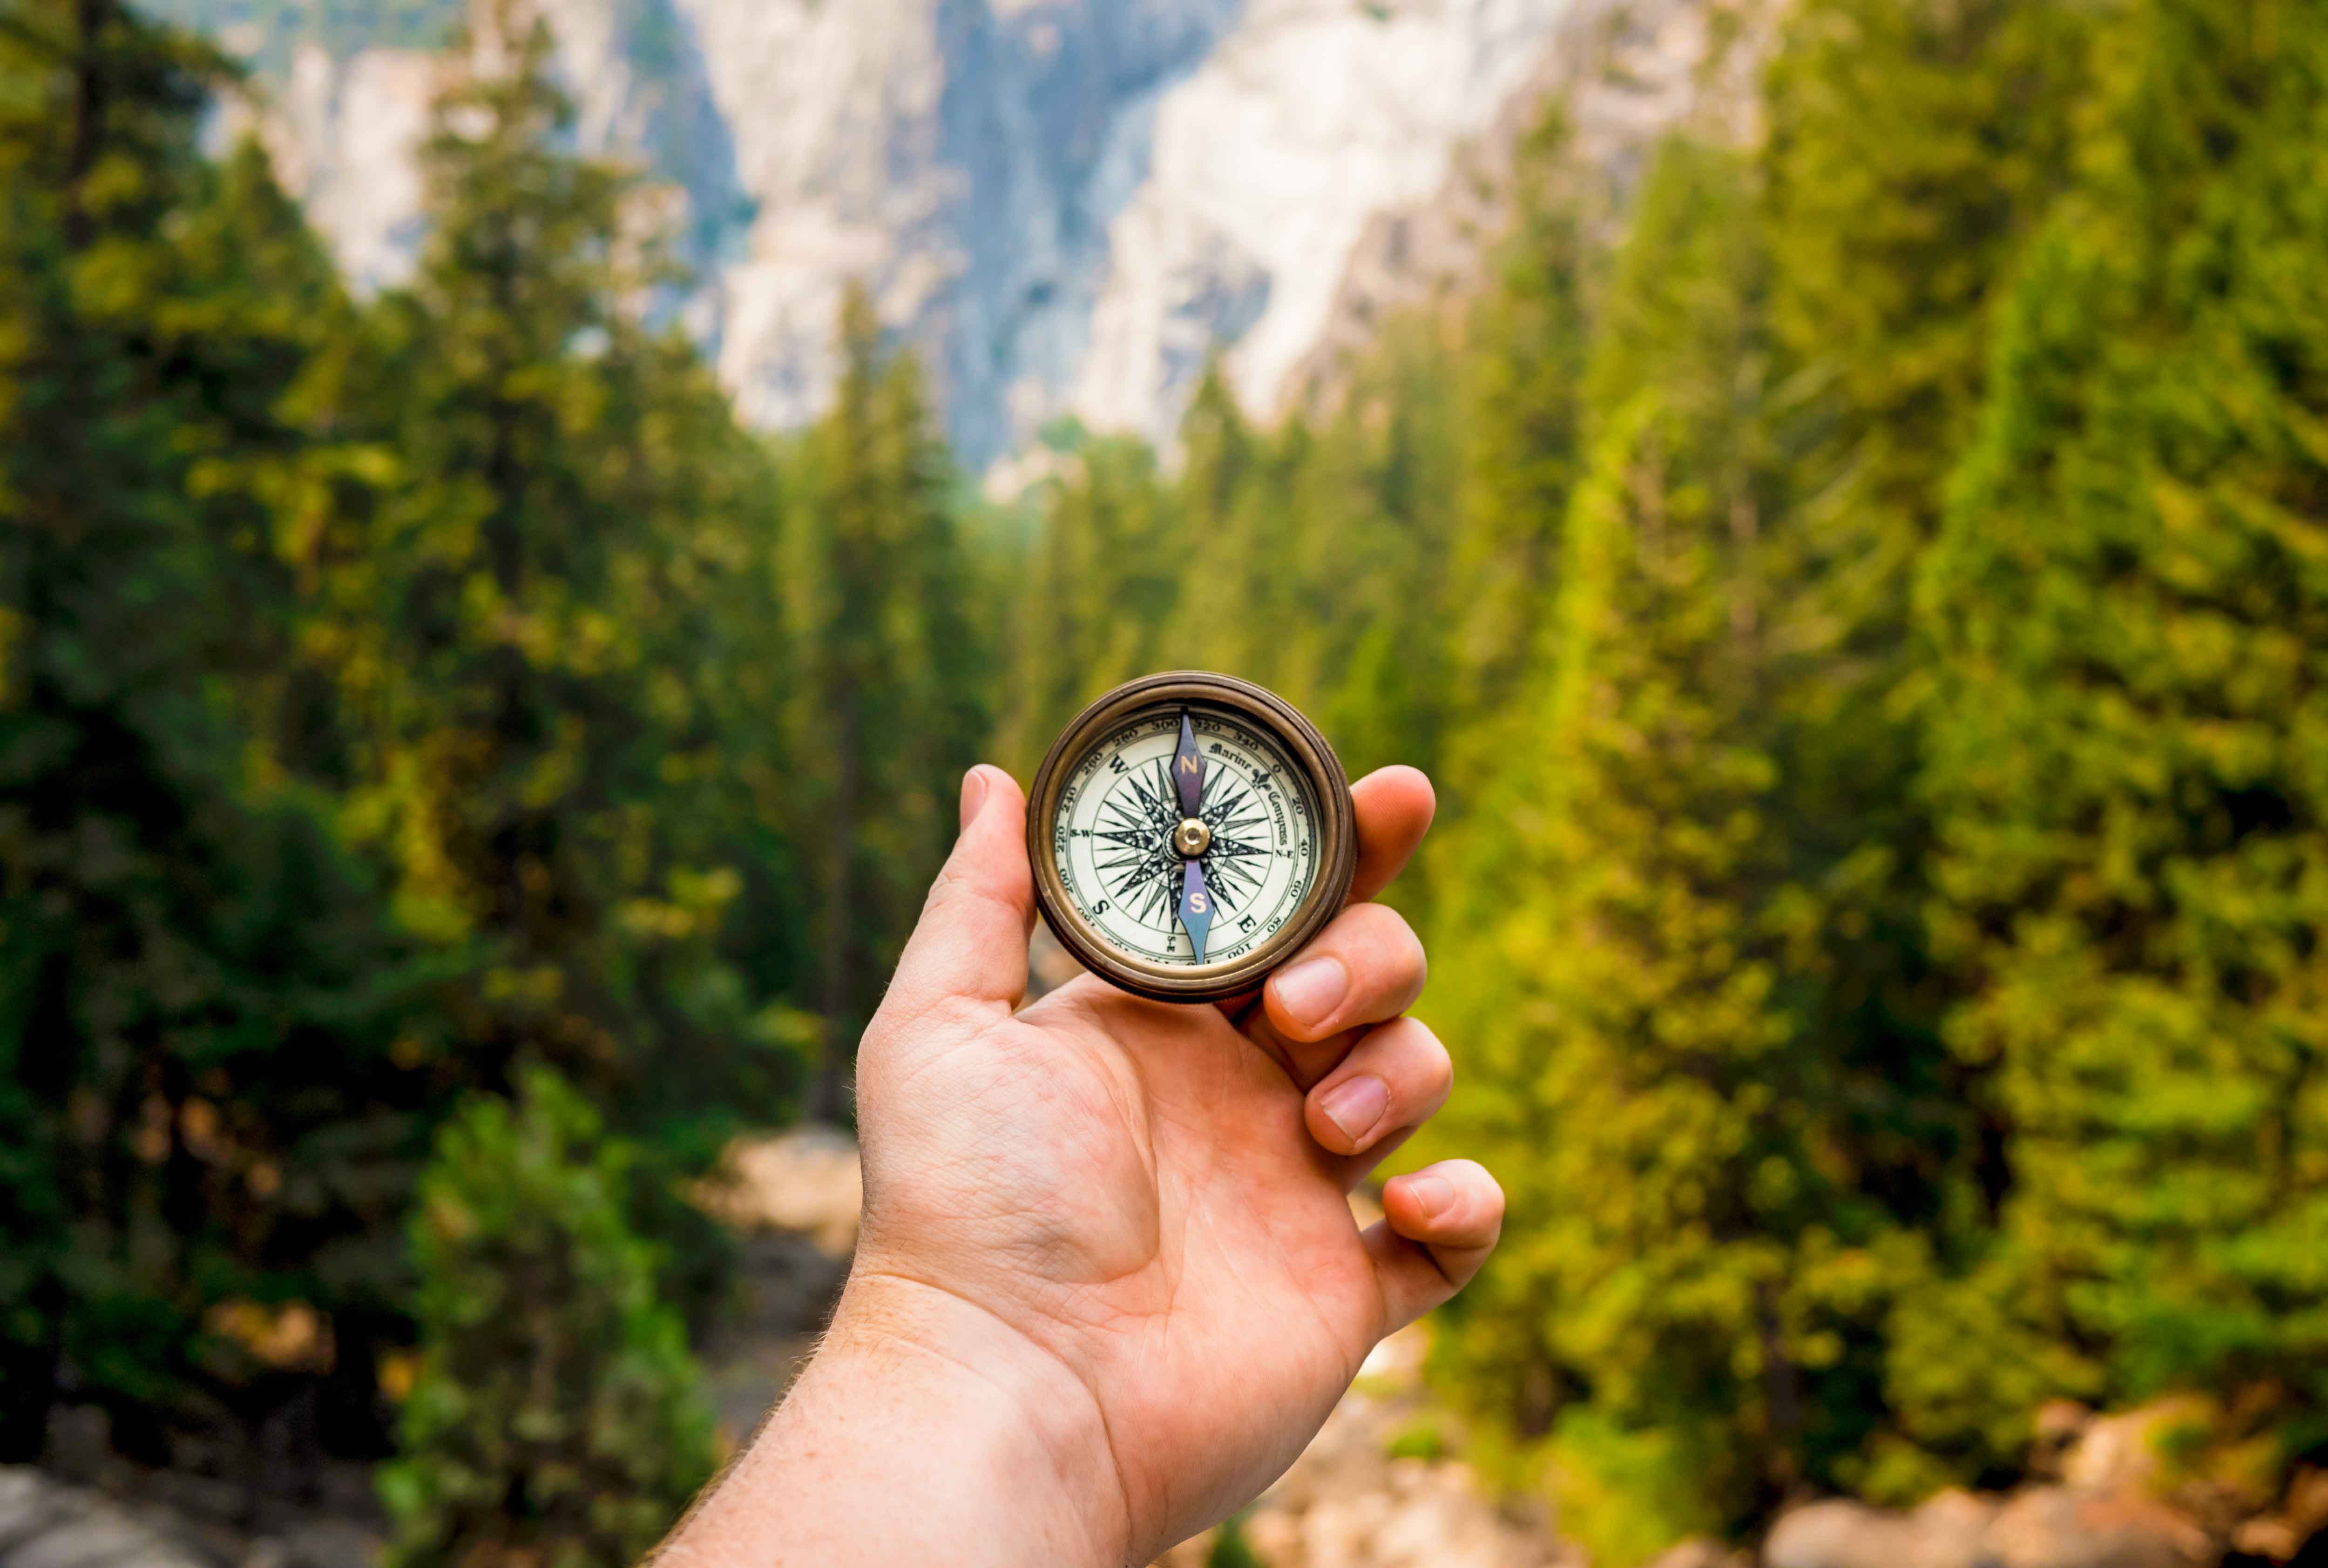 hand holding up a compass in front of a forest